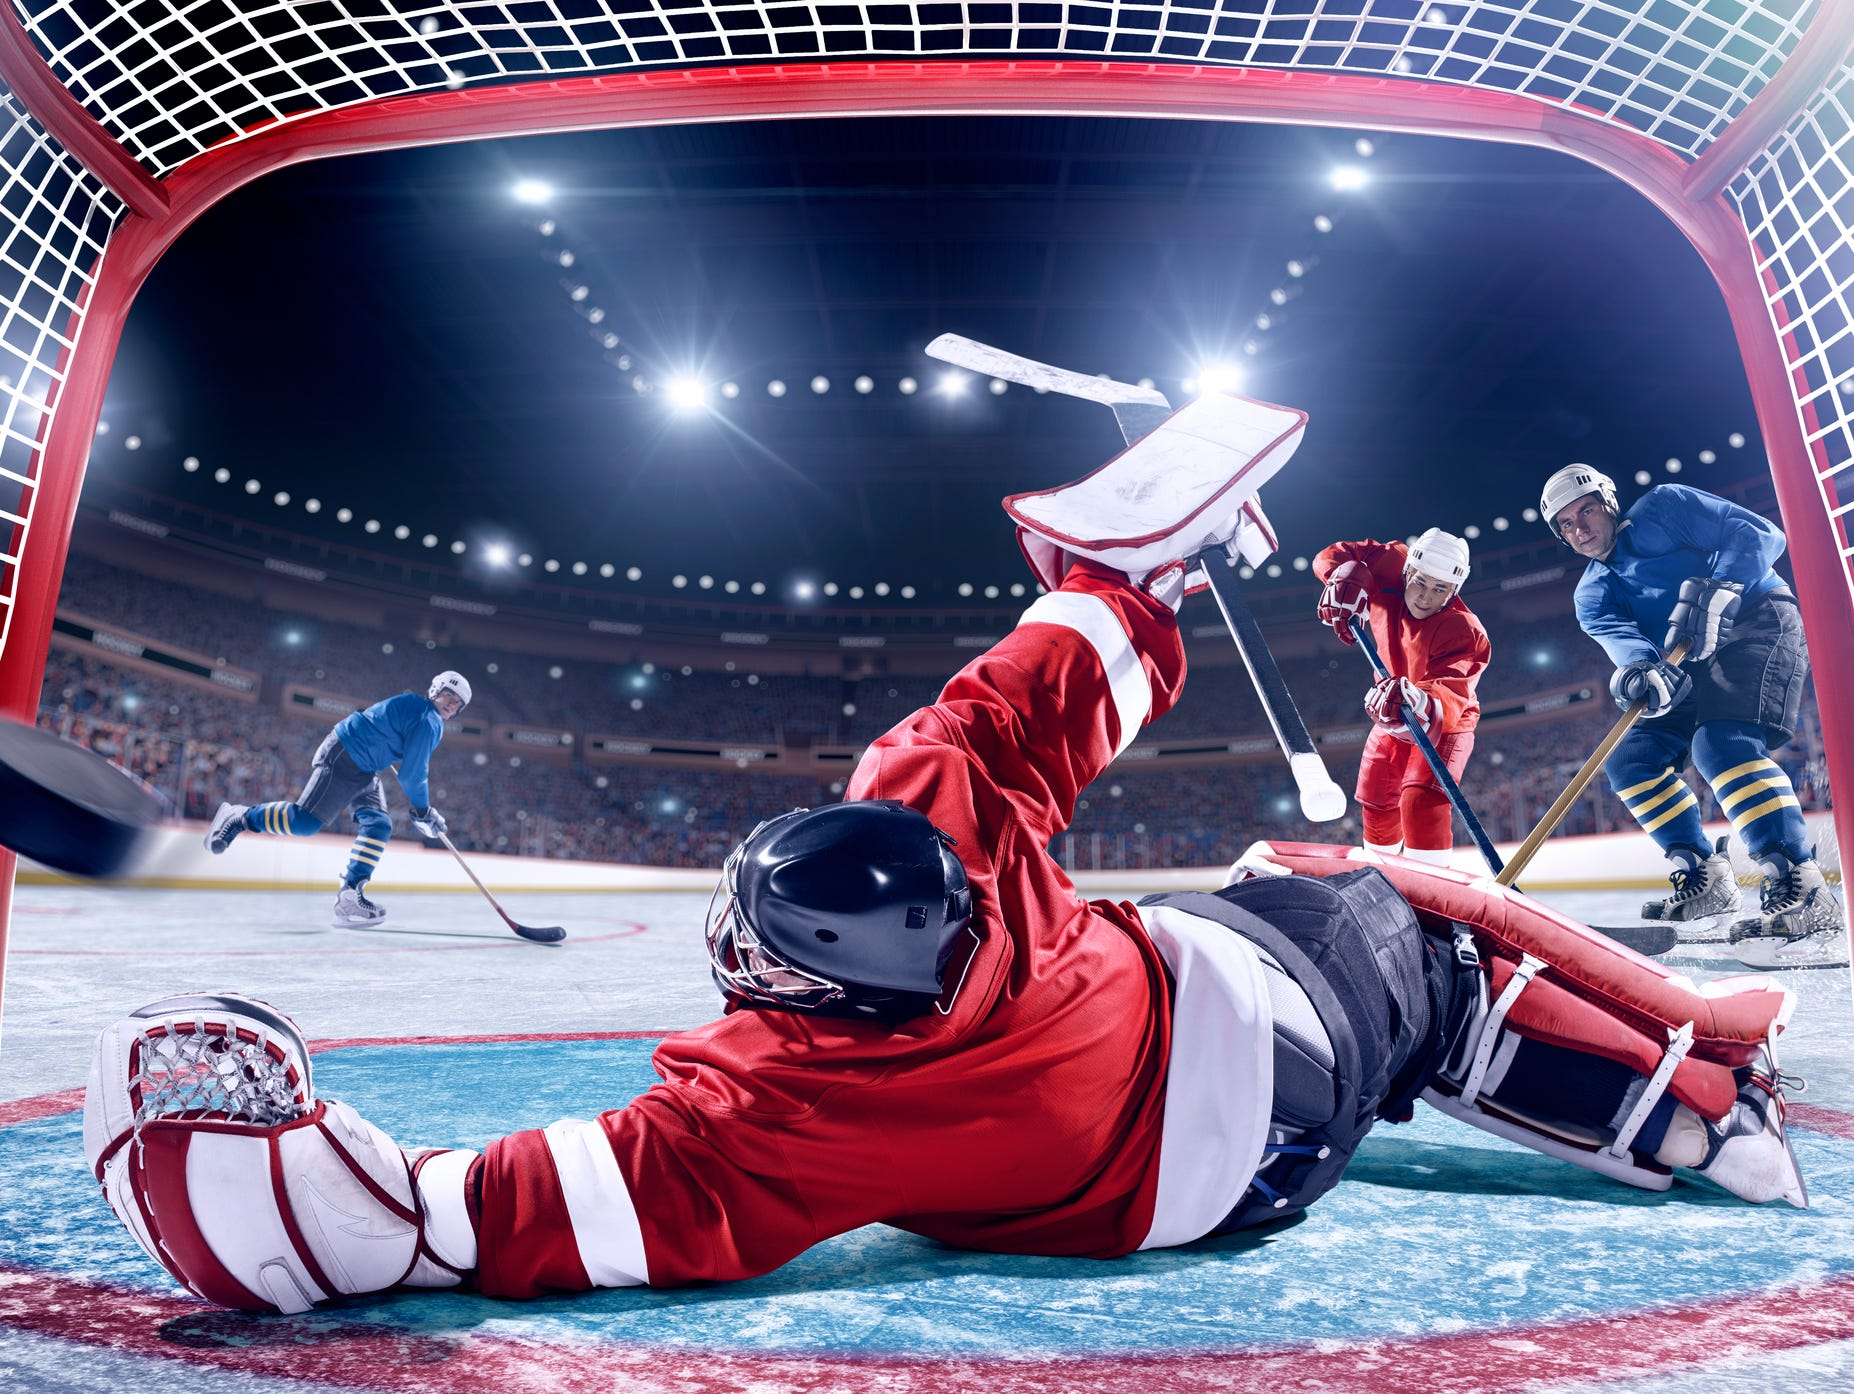 Watch the Badgers and Wildcats from a suite at the Resch Center for some college hockey. Enter 9/28-10/18.